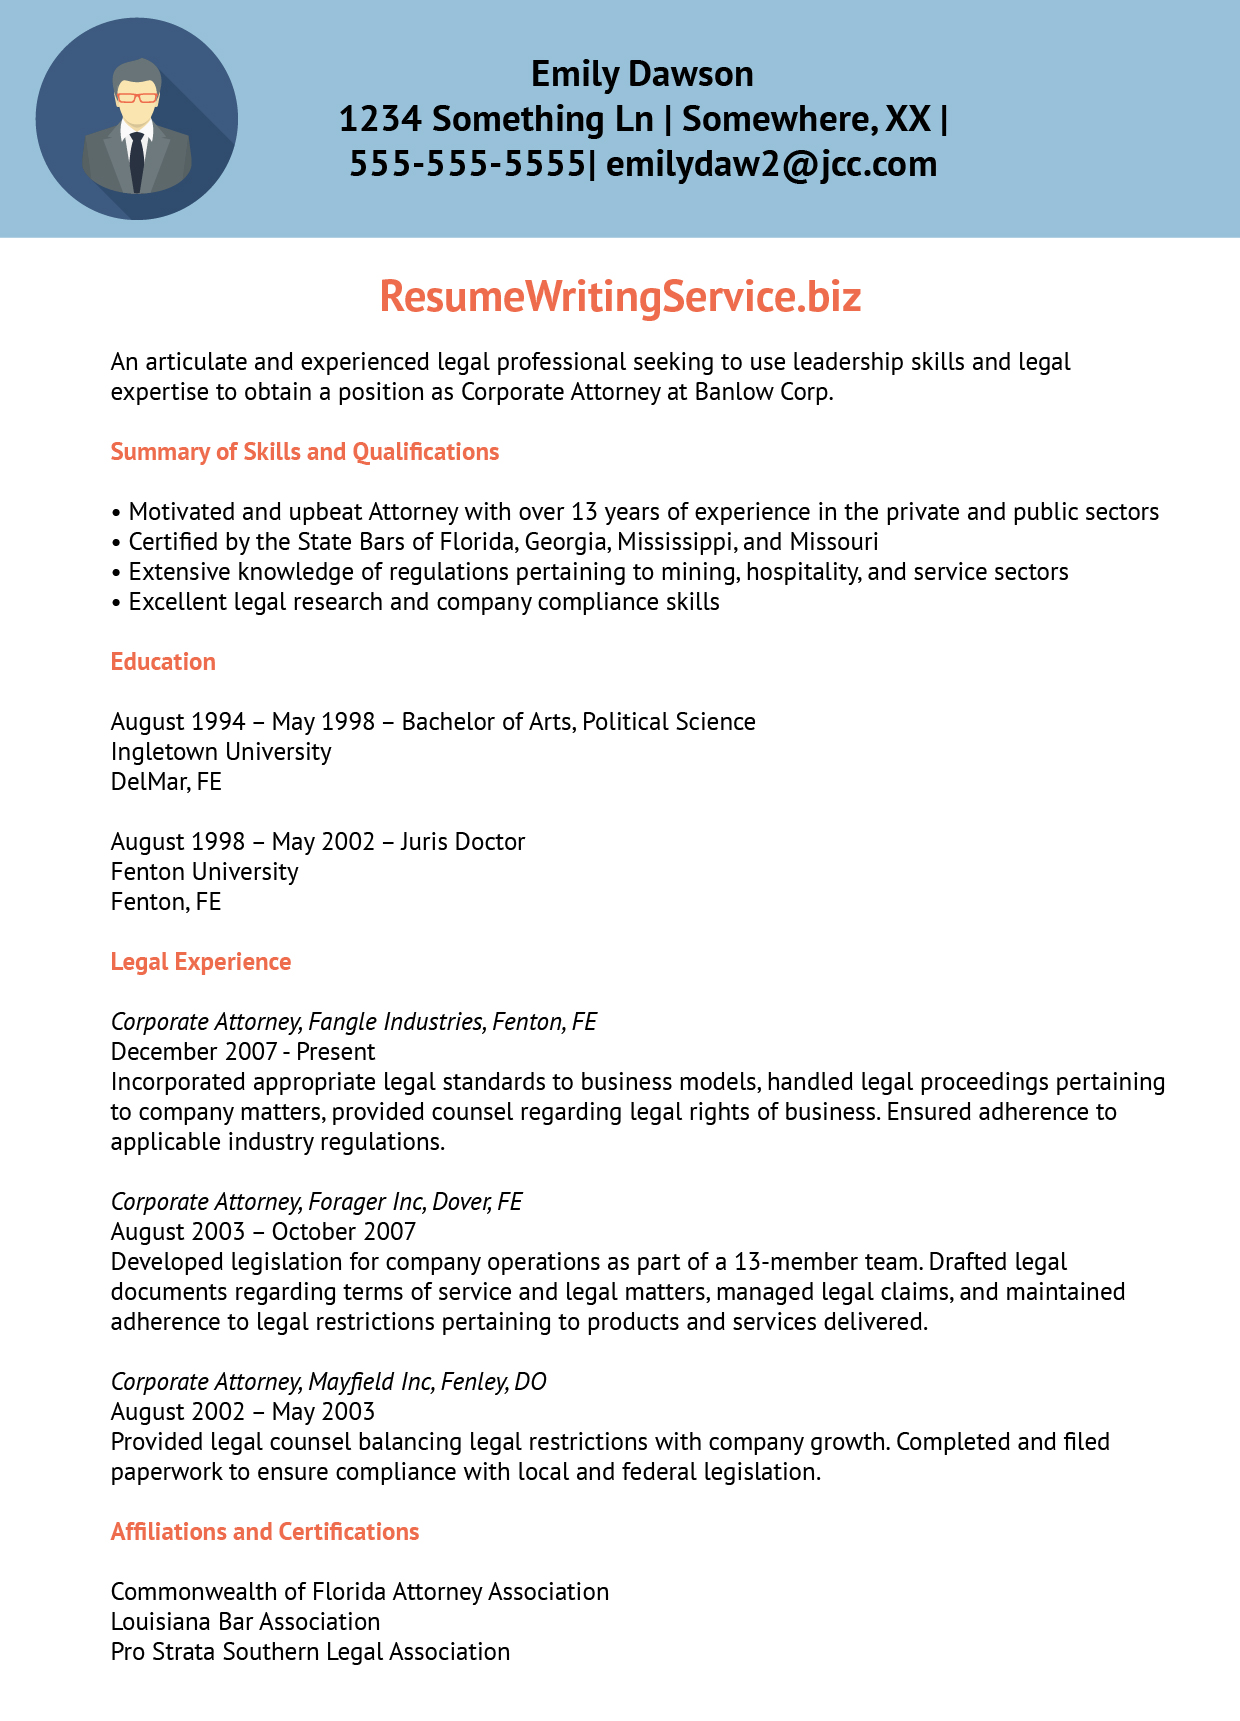 Examples Of Resumes, Cover Letters, And Other Job Search Documents Written  By A Top Rated, Award Winning Professional Resume Writing Firm.